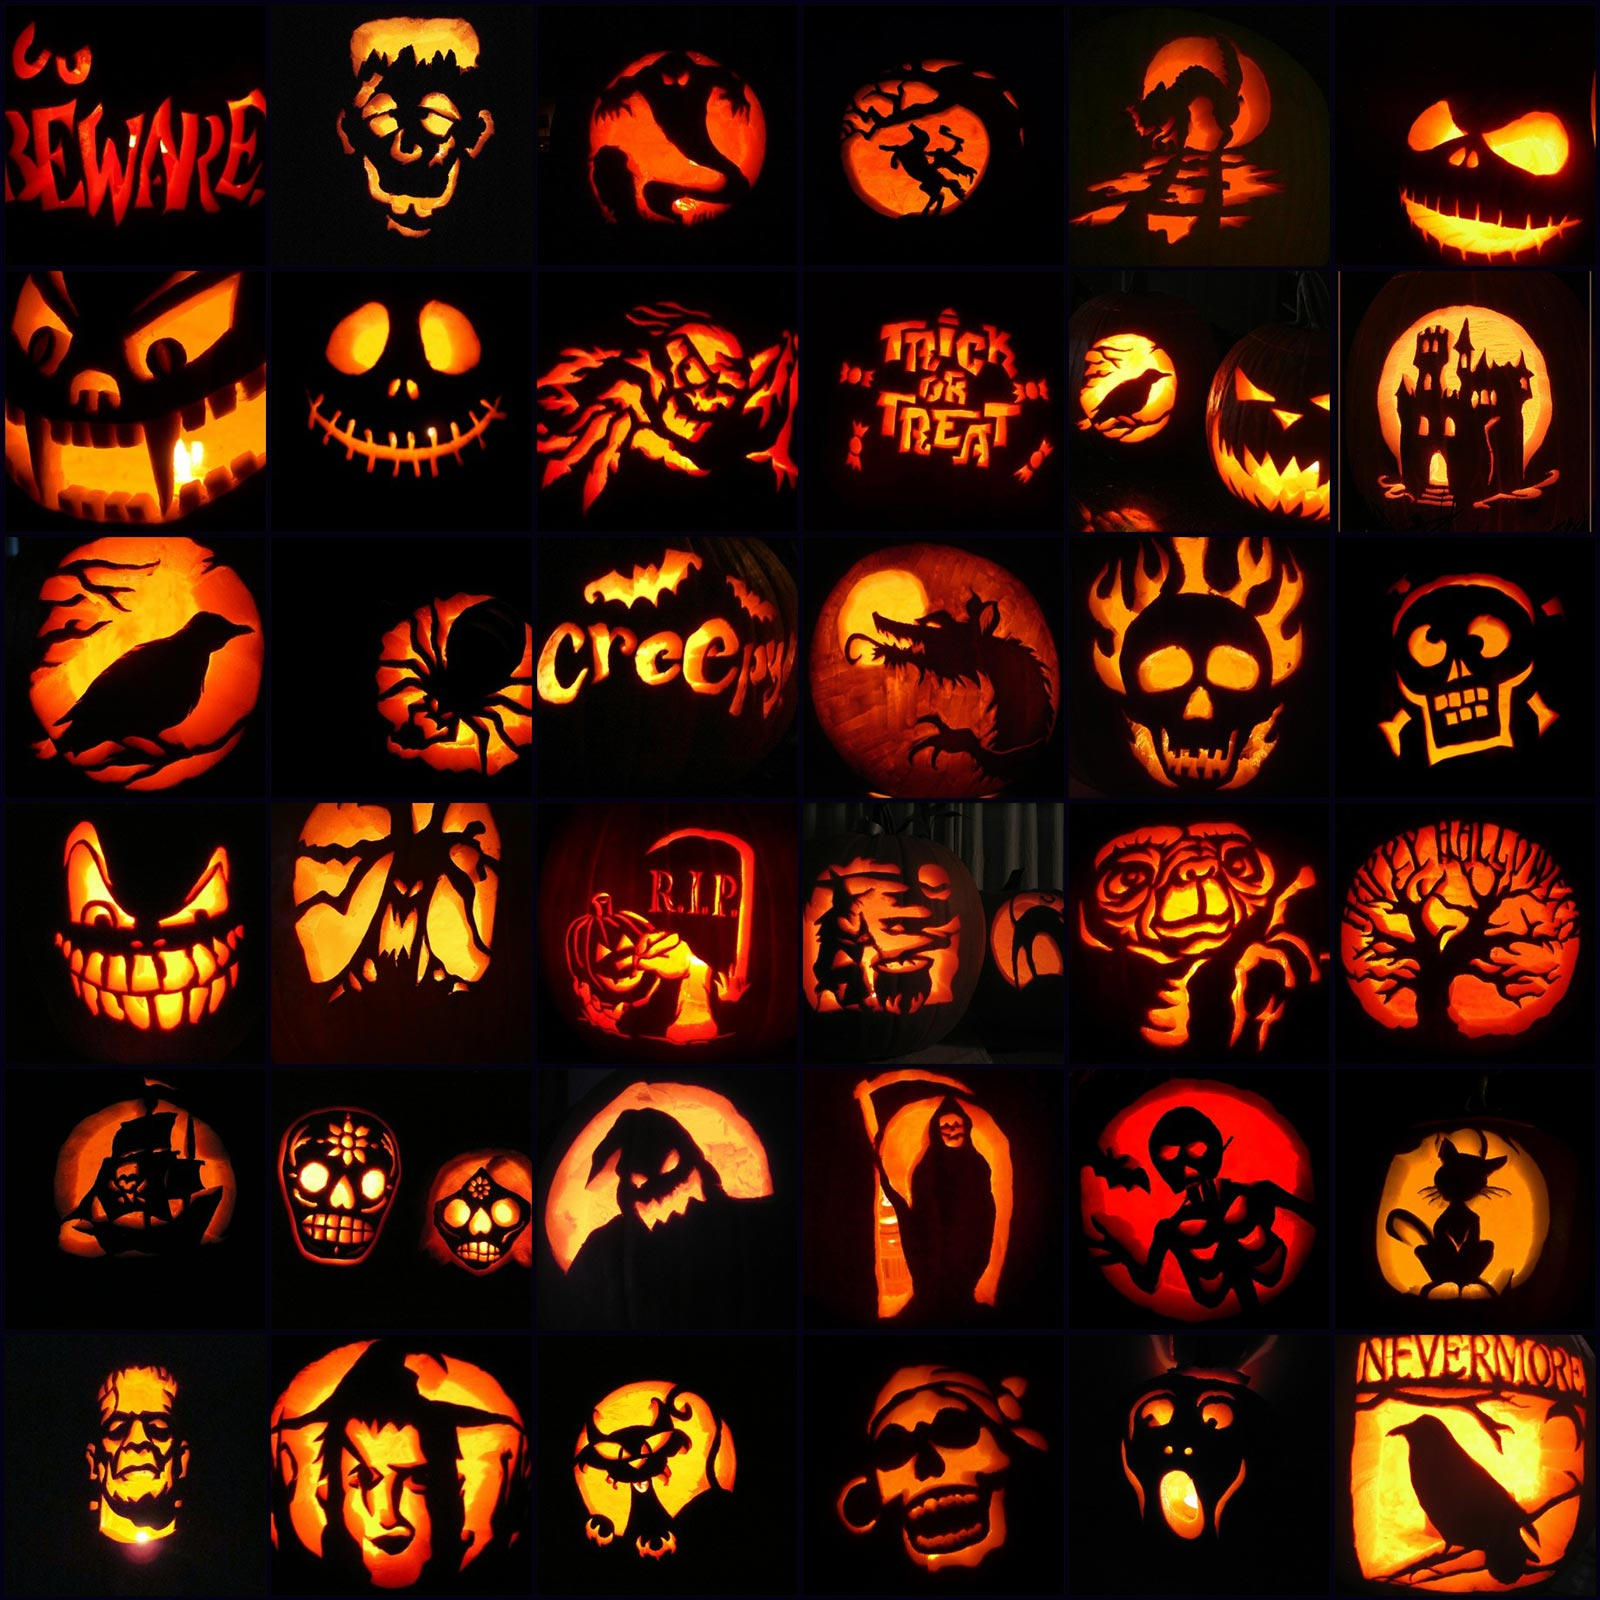 Halloween pumpkin carving designs u faces designs